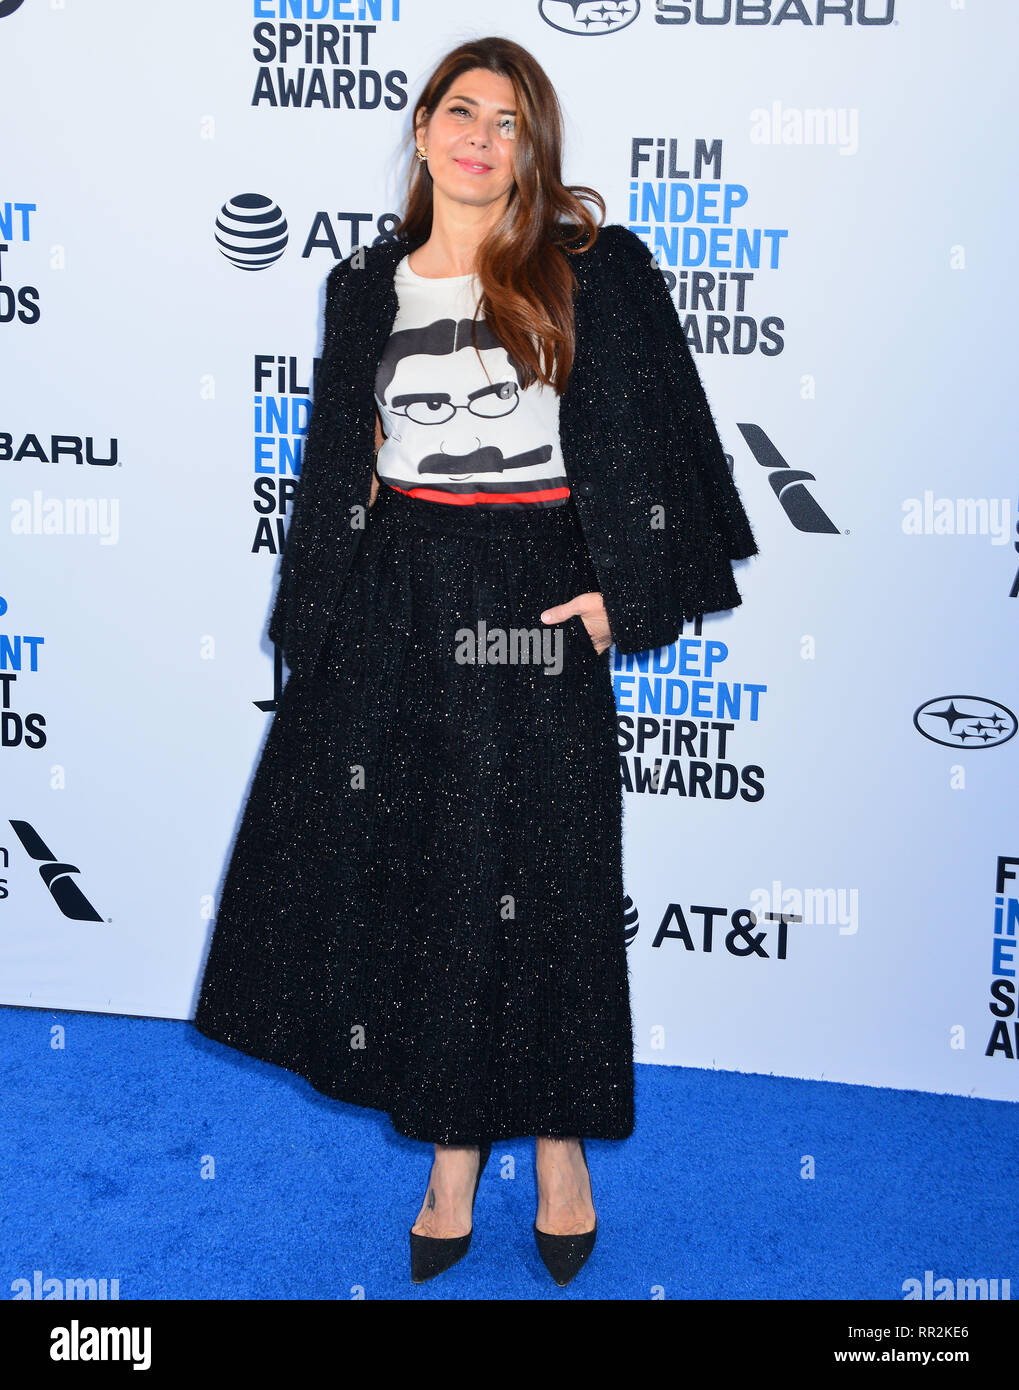 Santa Monica, California, USA. 23rd Feb, 2019. Marisa Tomei 010 attends the 2019 Film Independent Spirit Awards on February 23, 2019 in Santa Monica, California. Credit: Tsuni / USA/Alamy Live News - Stock Image